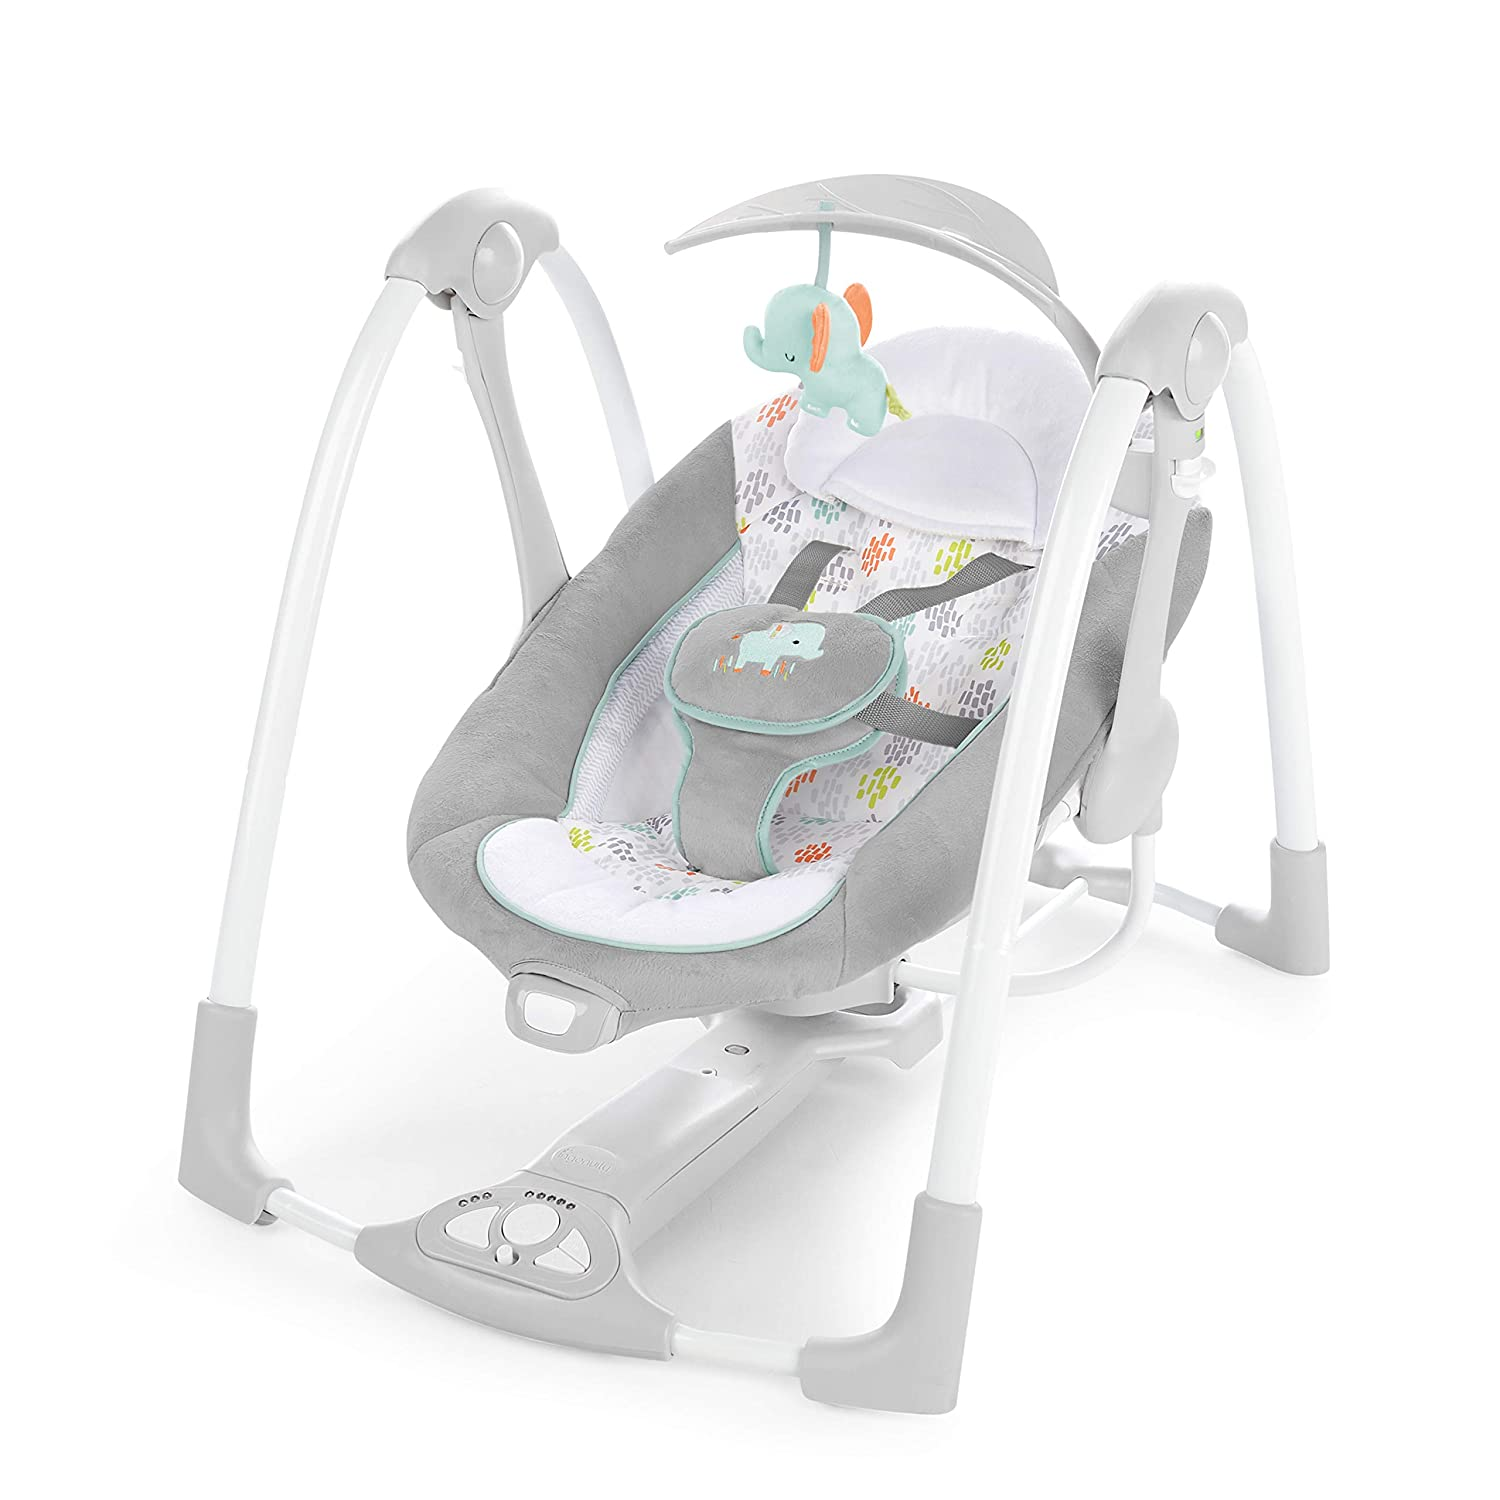 The Best Plug In Baby Swings with AC Adapter for 2021